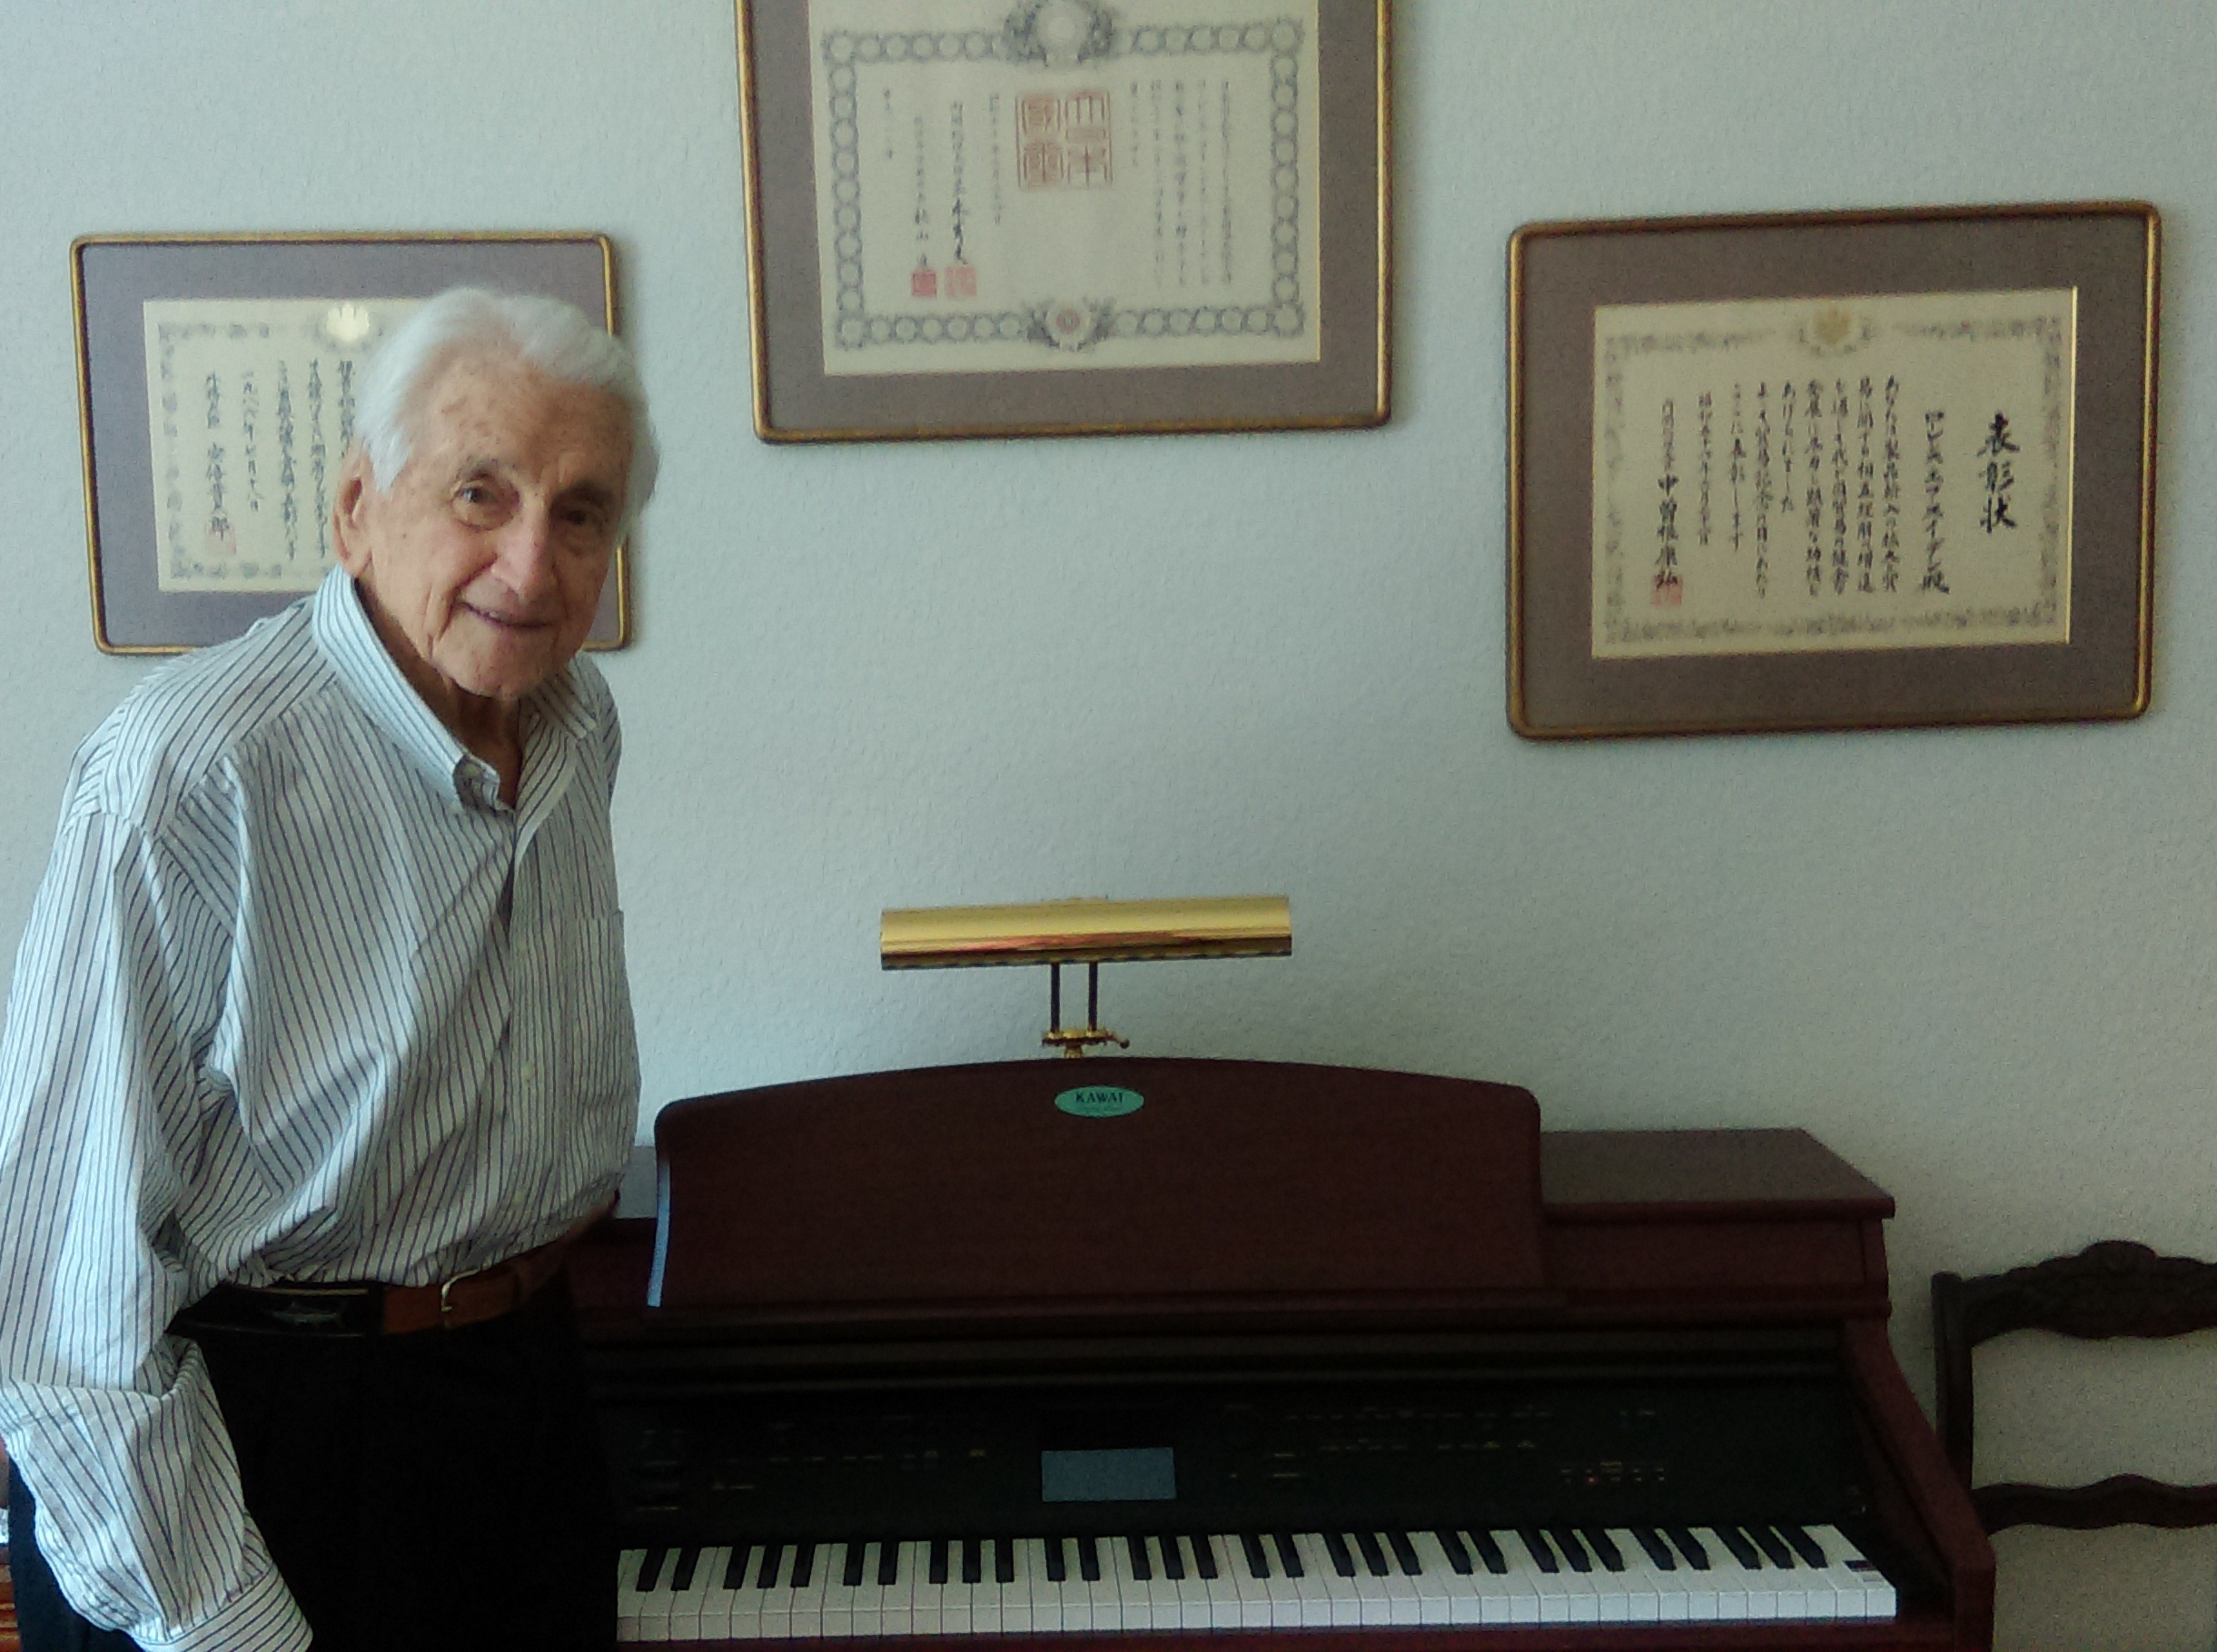 Lt. Gen. Snowden poses with his personal piano, given to CCS.